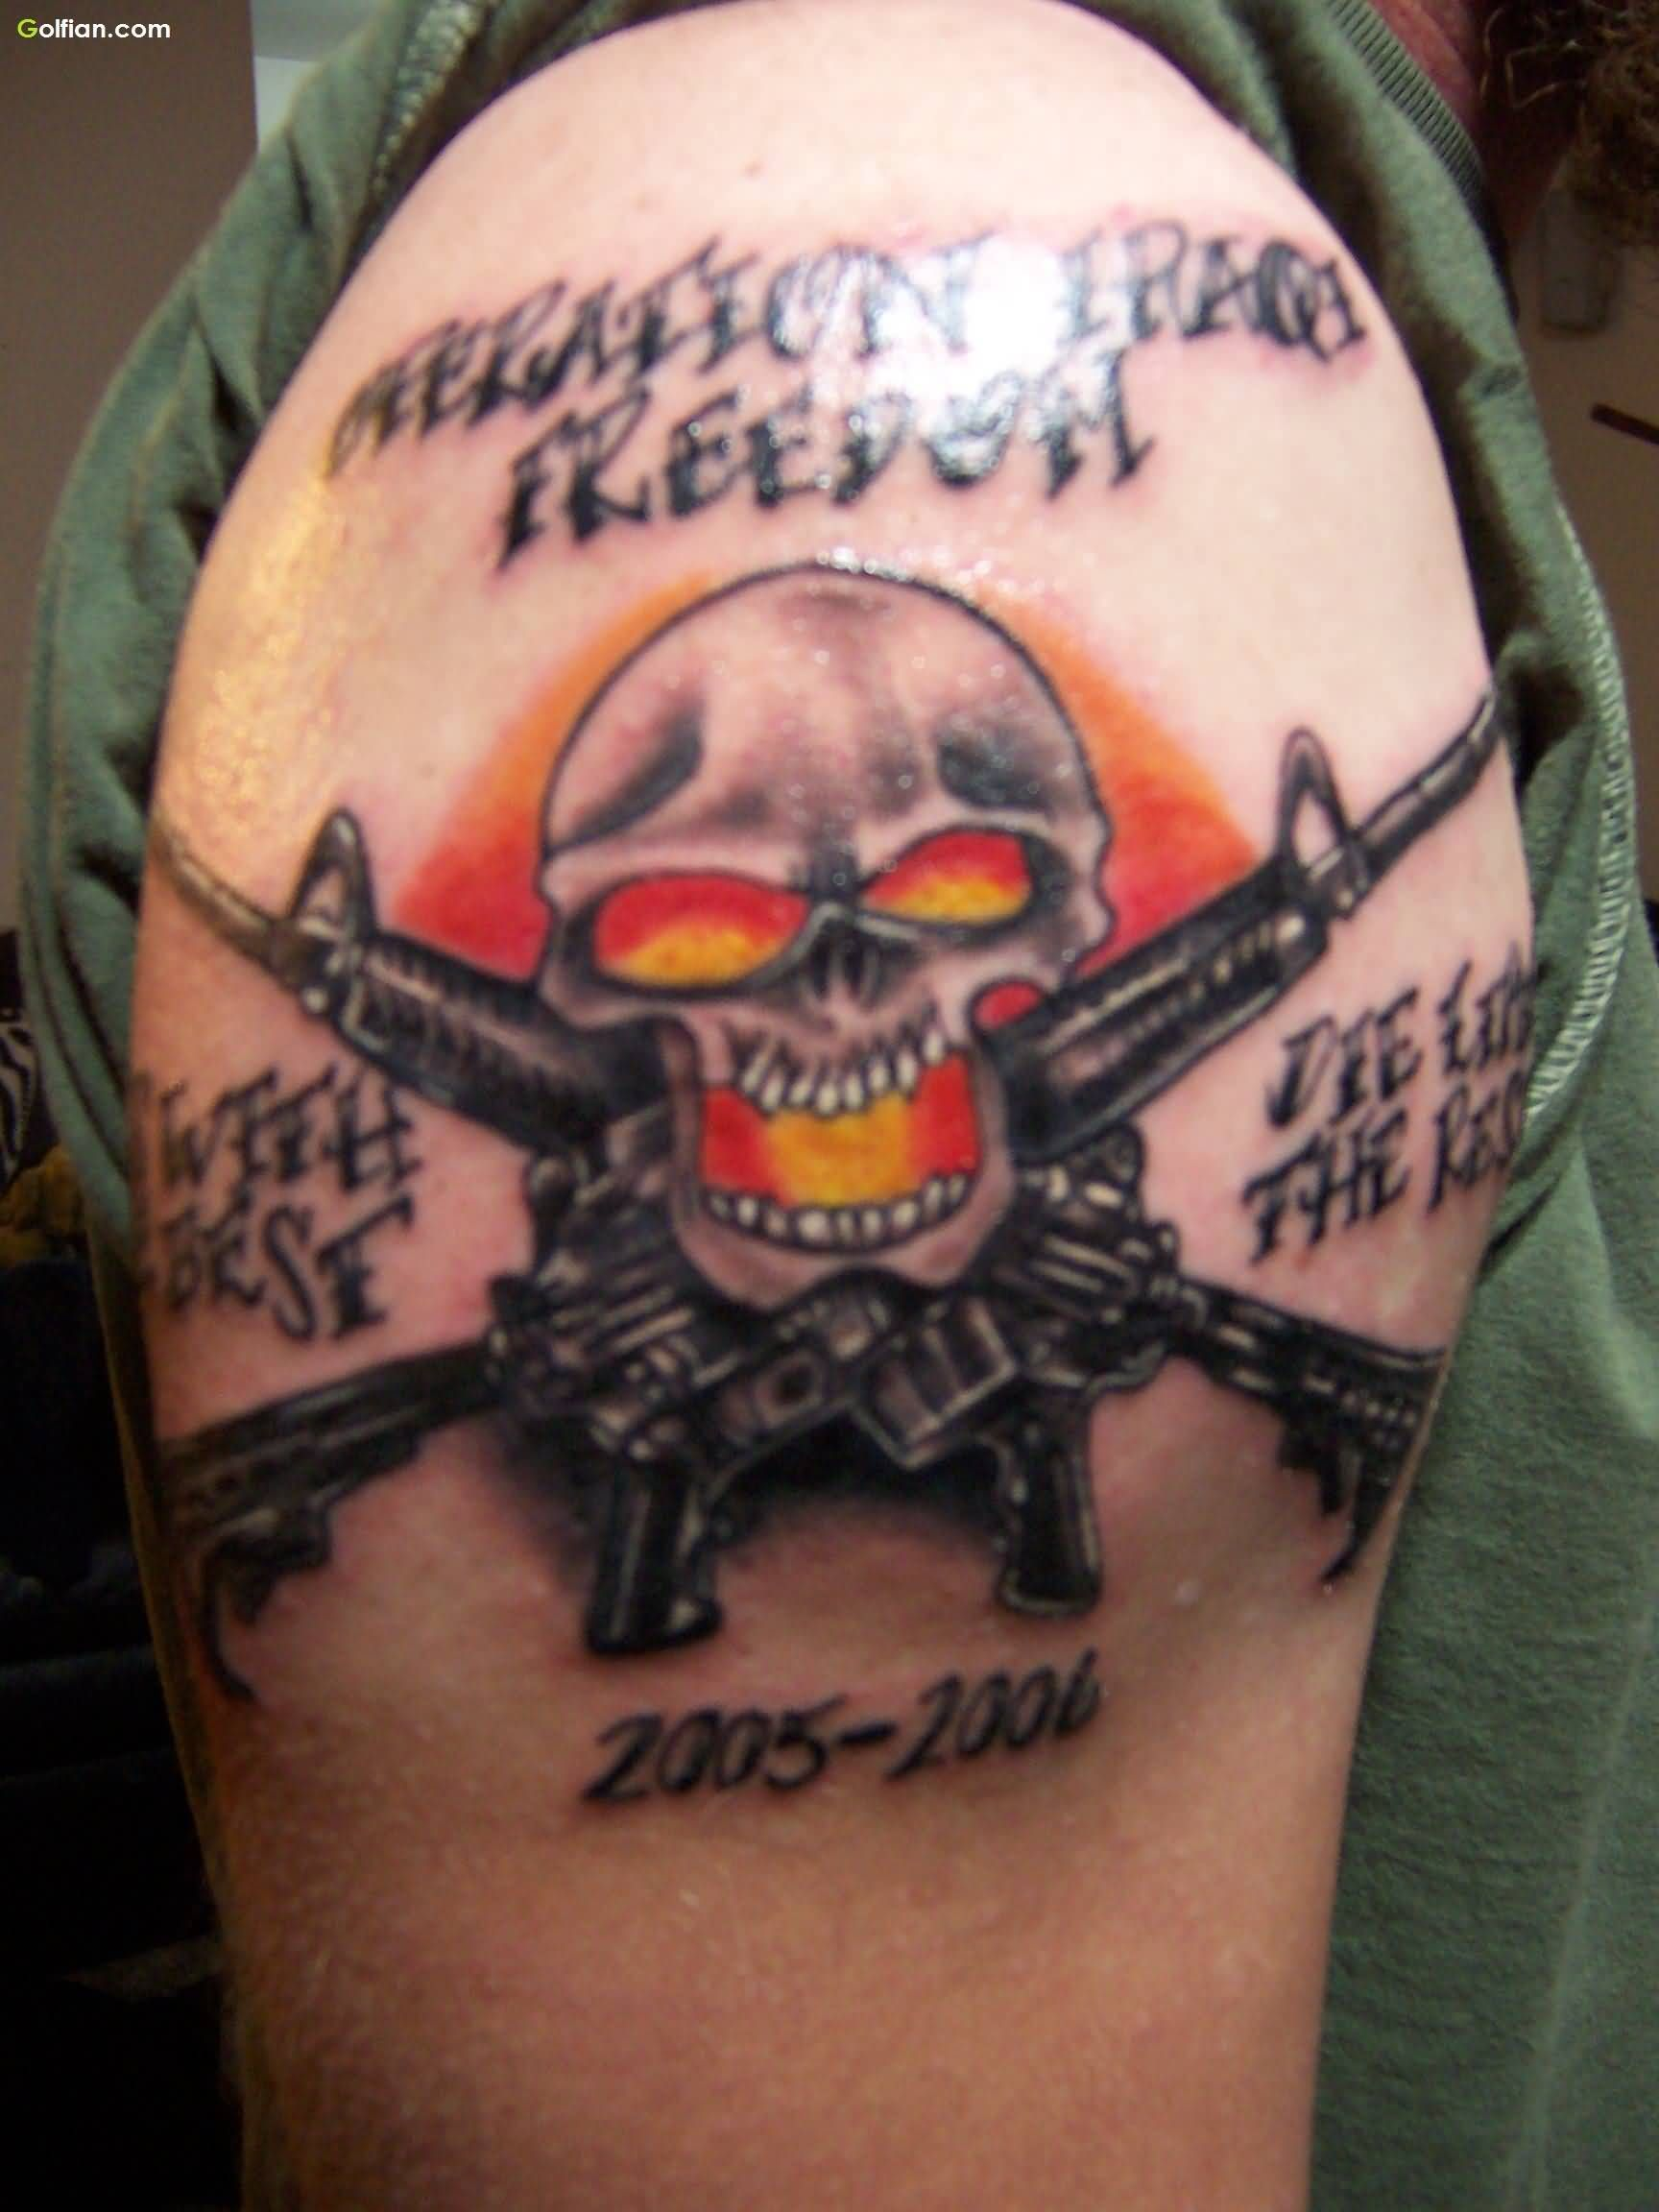 Horrible tattoo ideas - M4 Tattoo Drawings 65 Horrible Army Skull Tattoo Pictures Scary